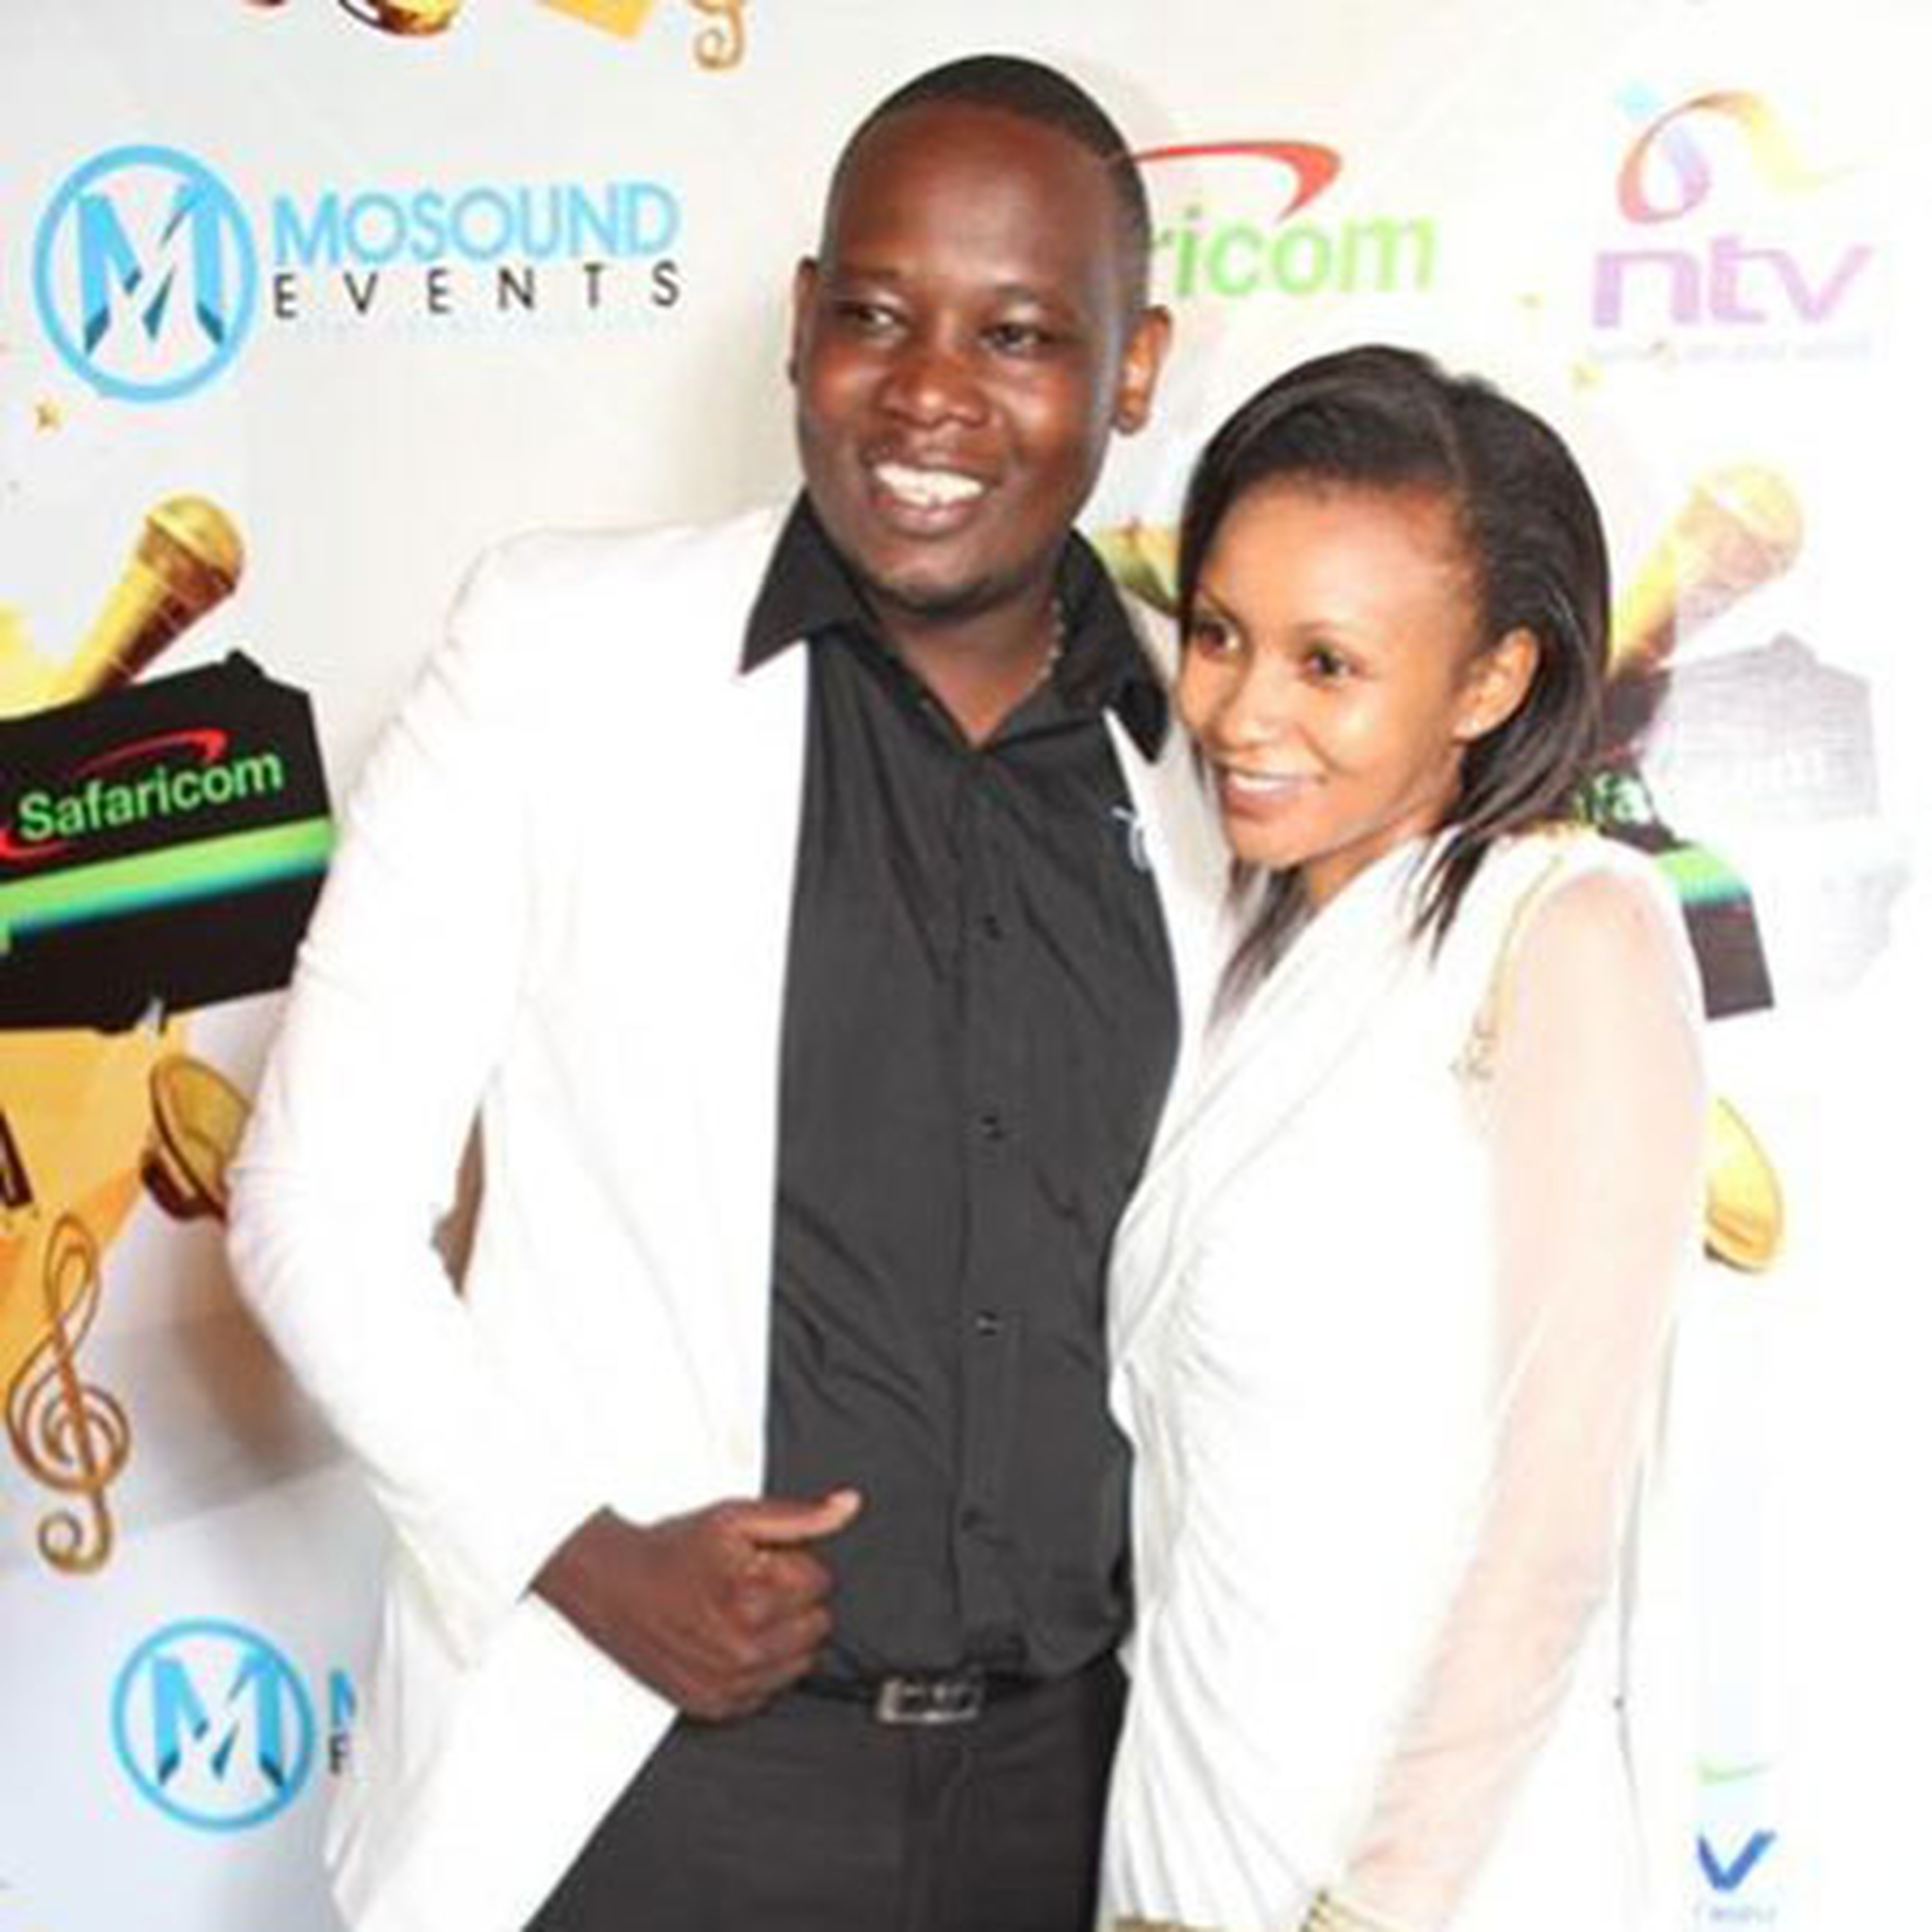 Rufftone - Proof That Kenyan Gospel Celebrities Have A Thing For Light Skinned Girls